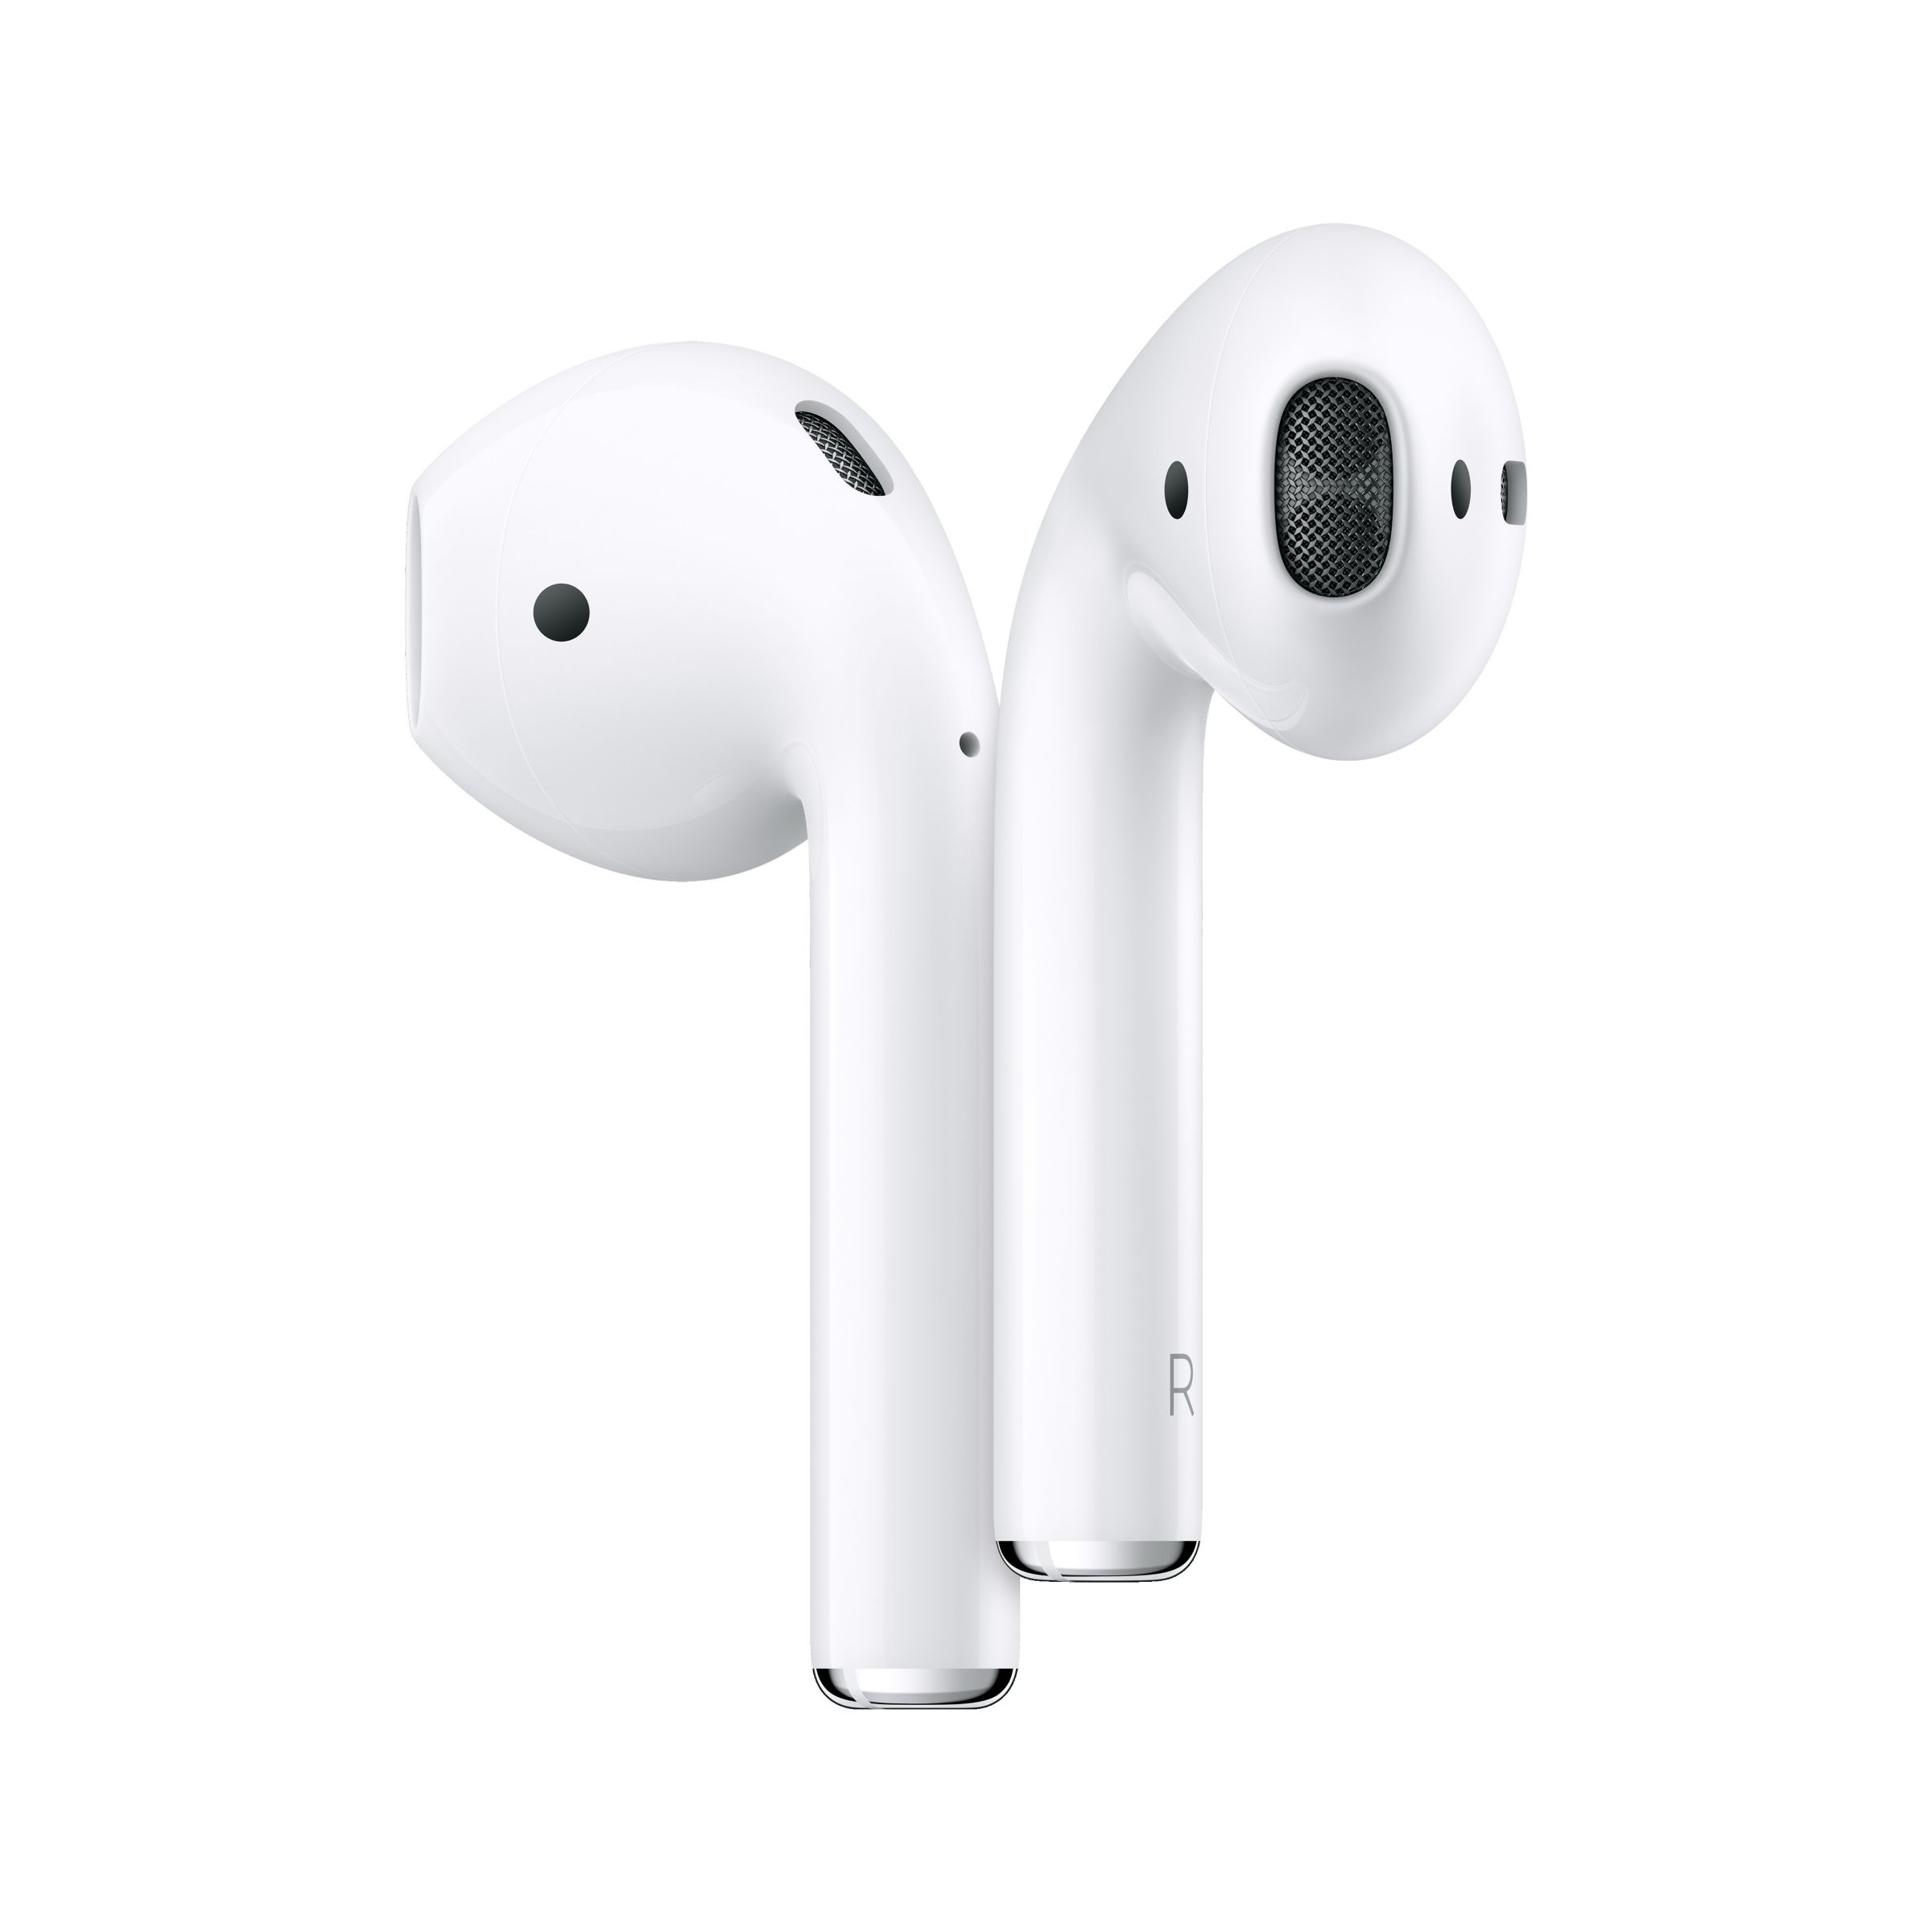 2019 Apple Airpods With Wireless Charging Case At John